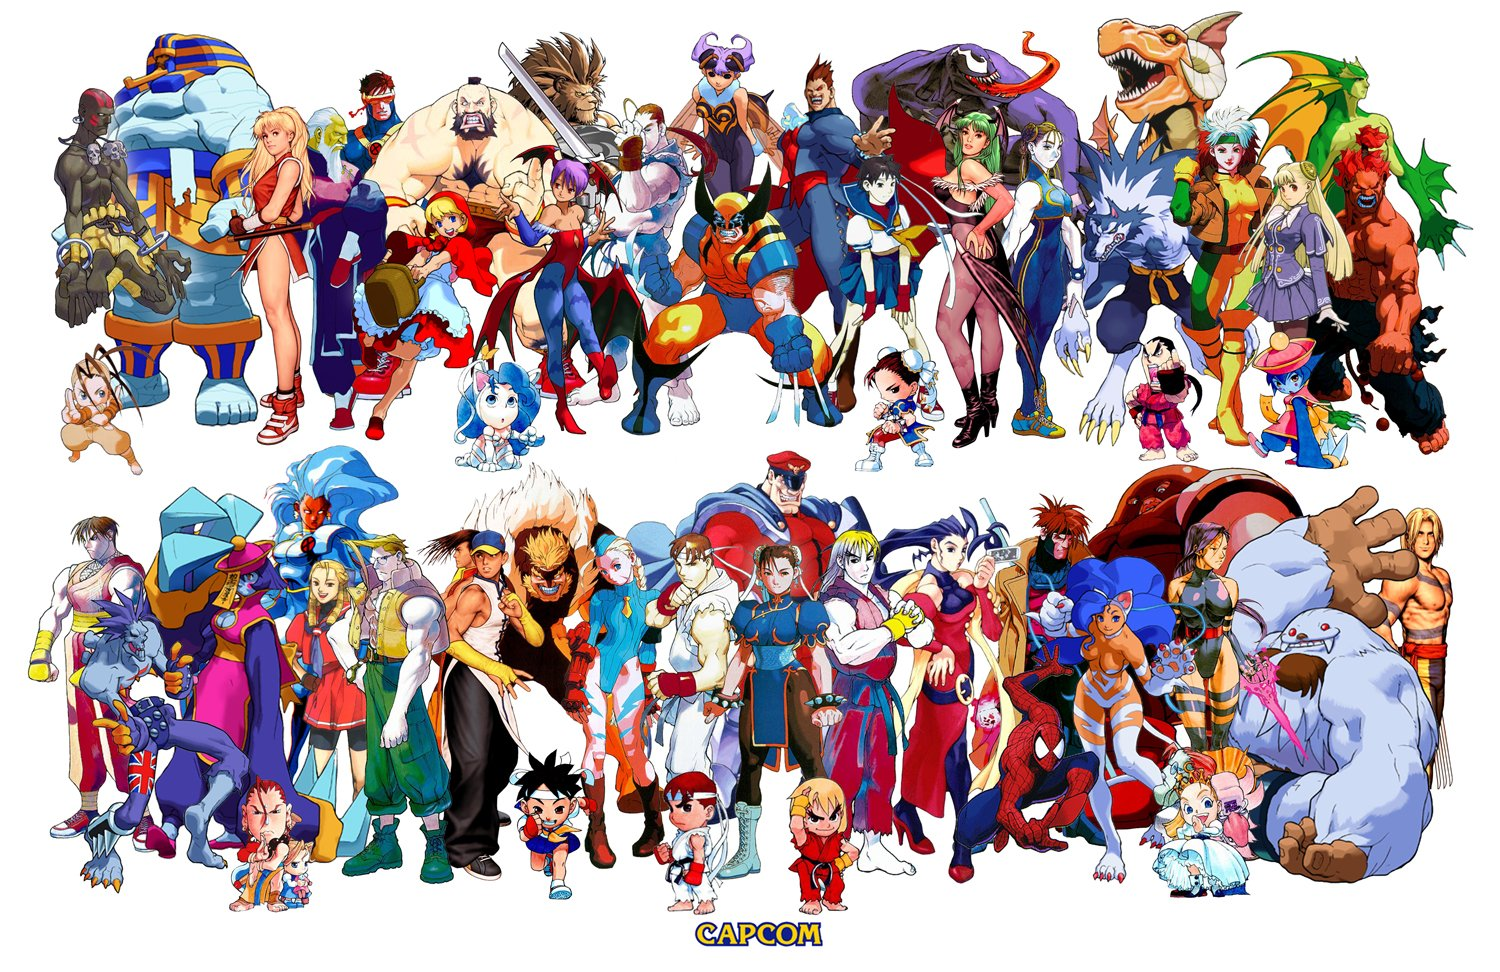 Capcom Fighting Characters - Gaming wallpaper